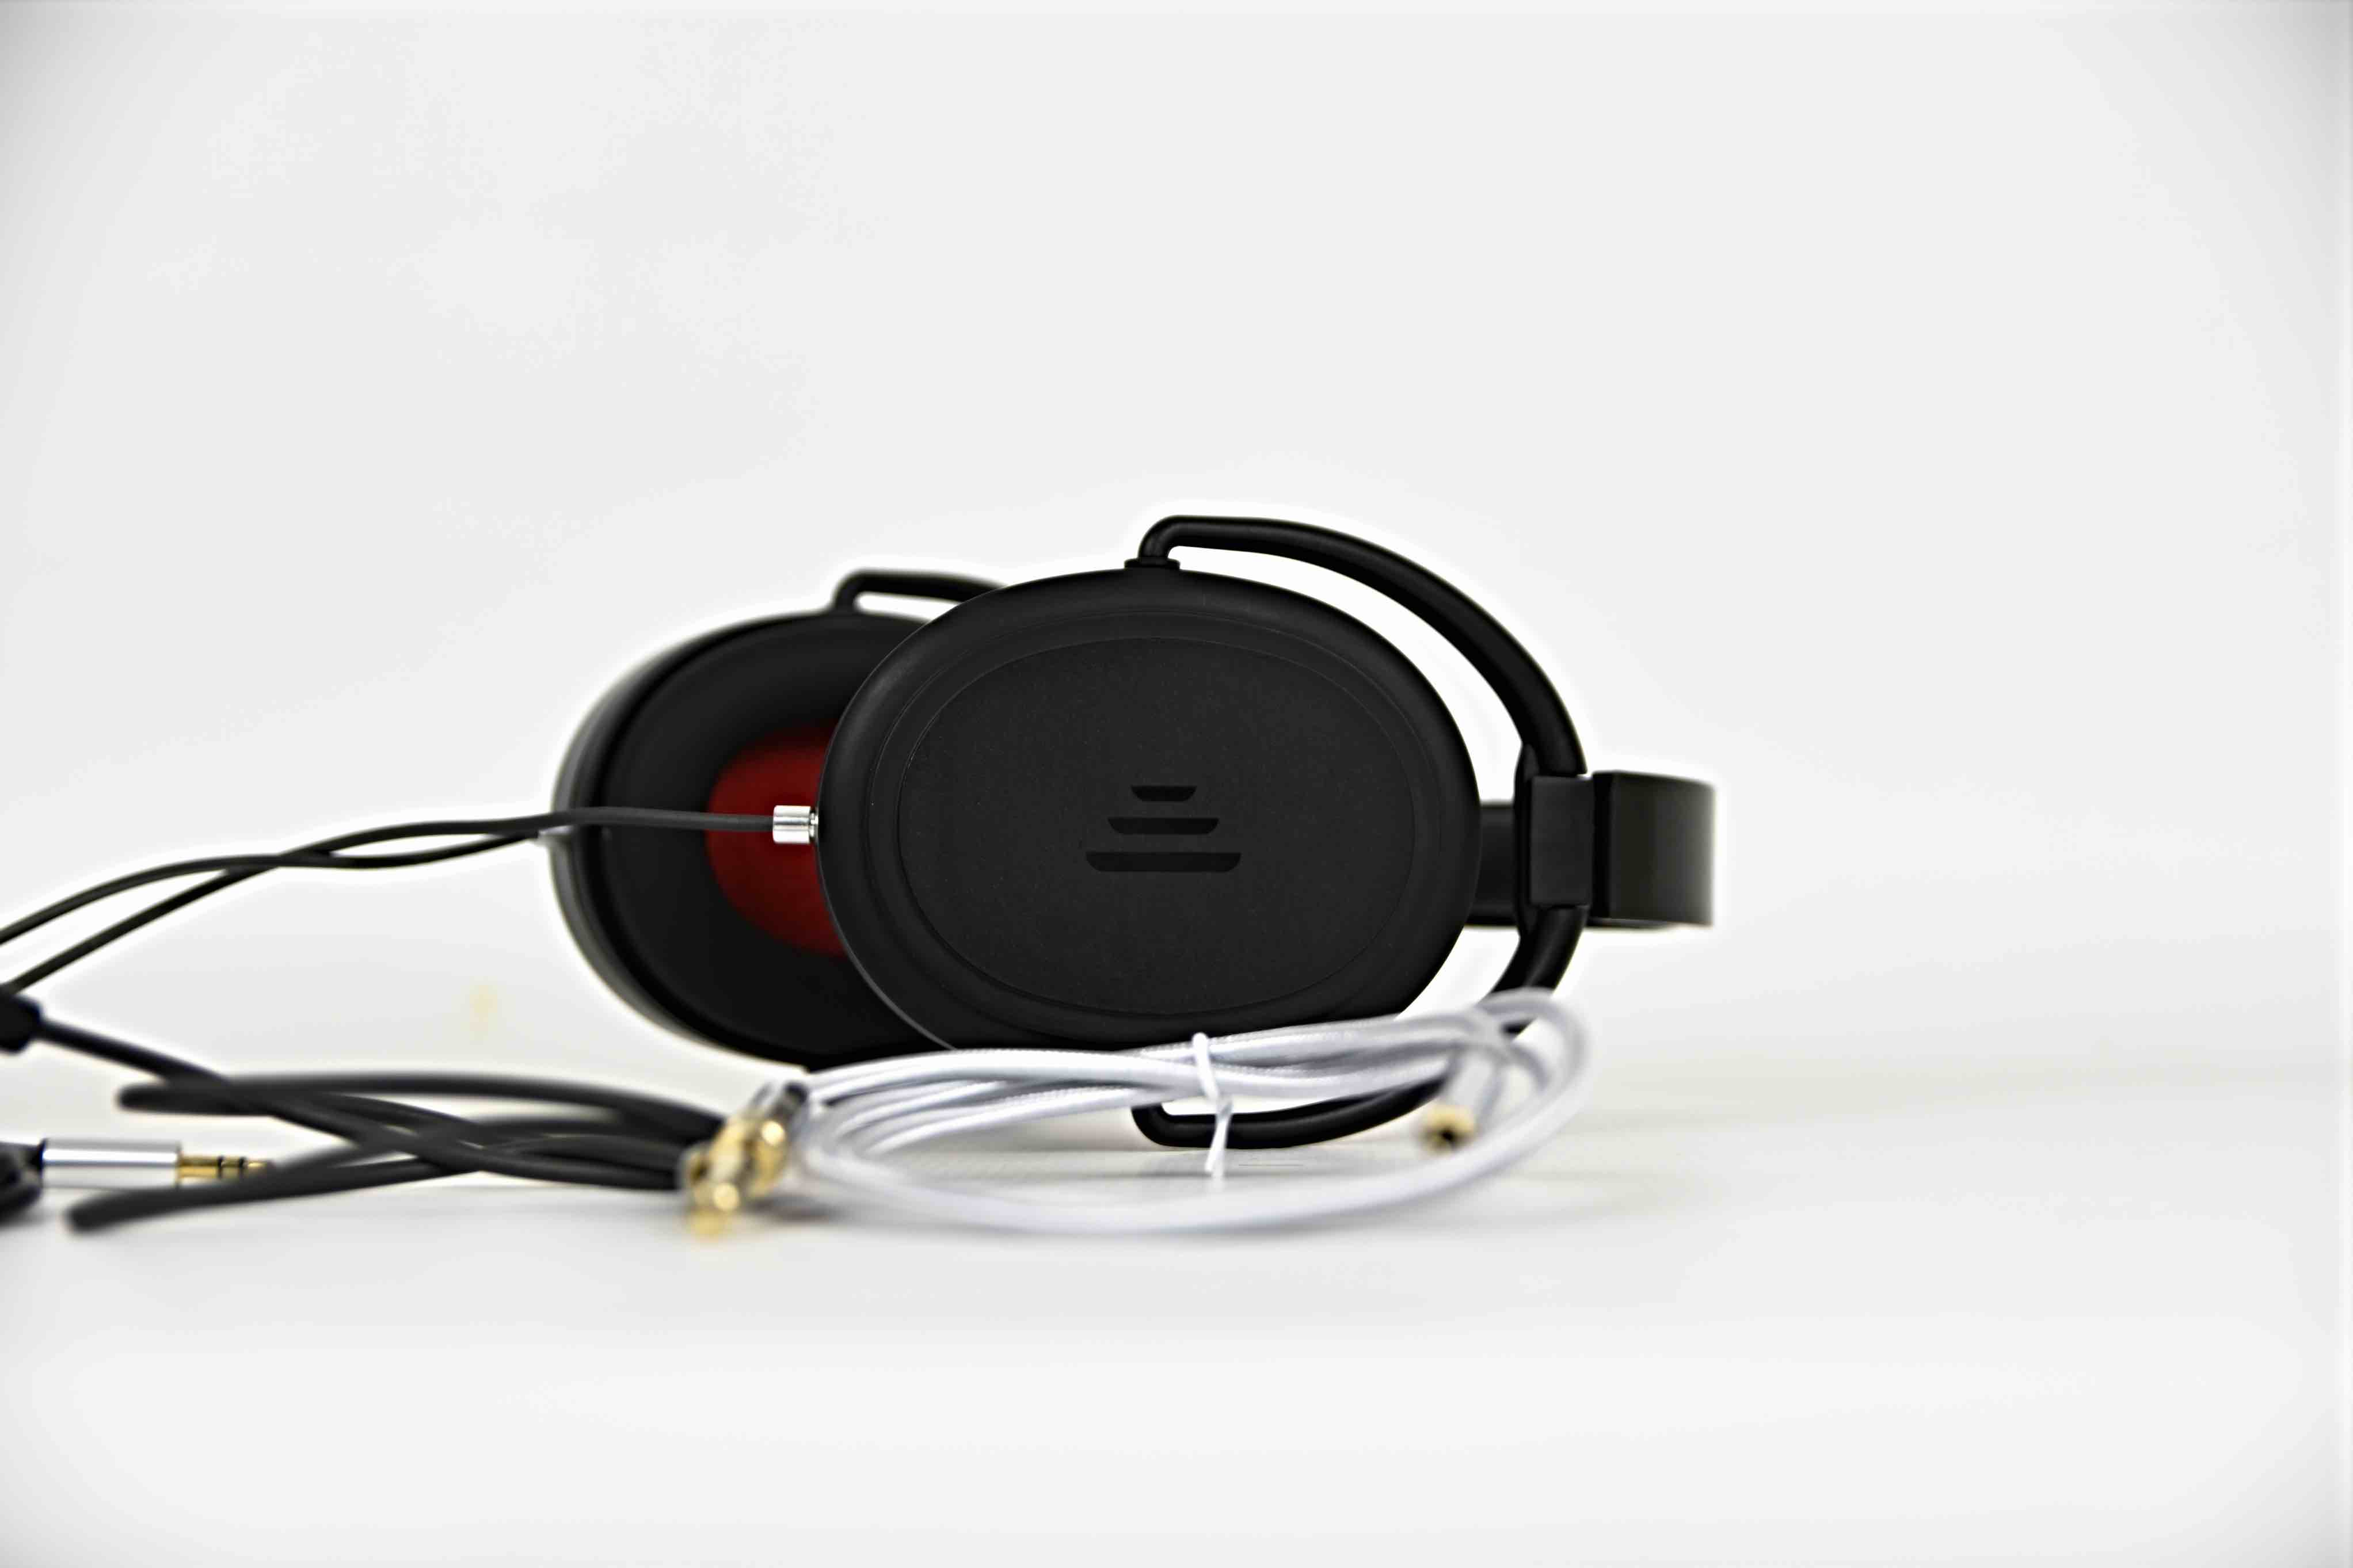 Direct Sound Extreme Isolation SP-34 Headphones tested by en.beatit.tv